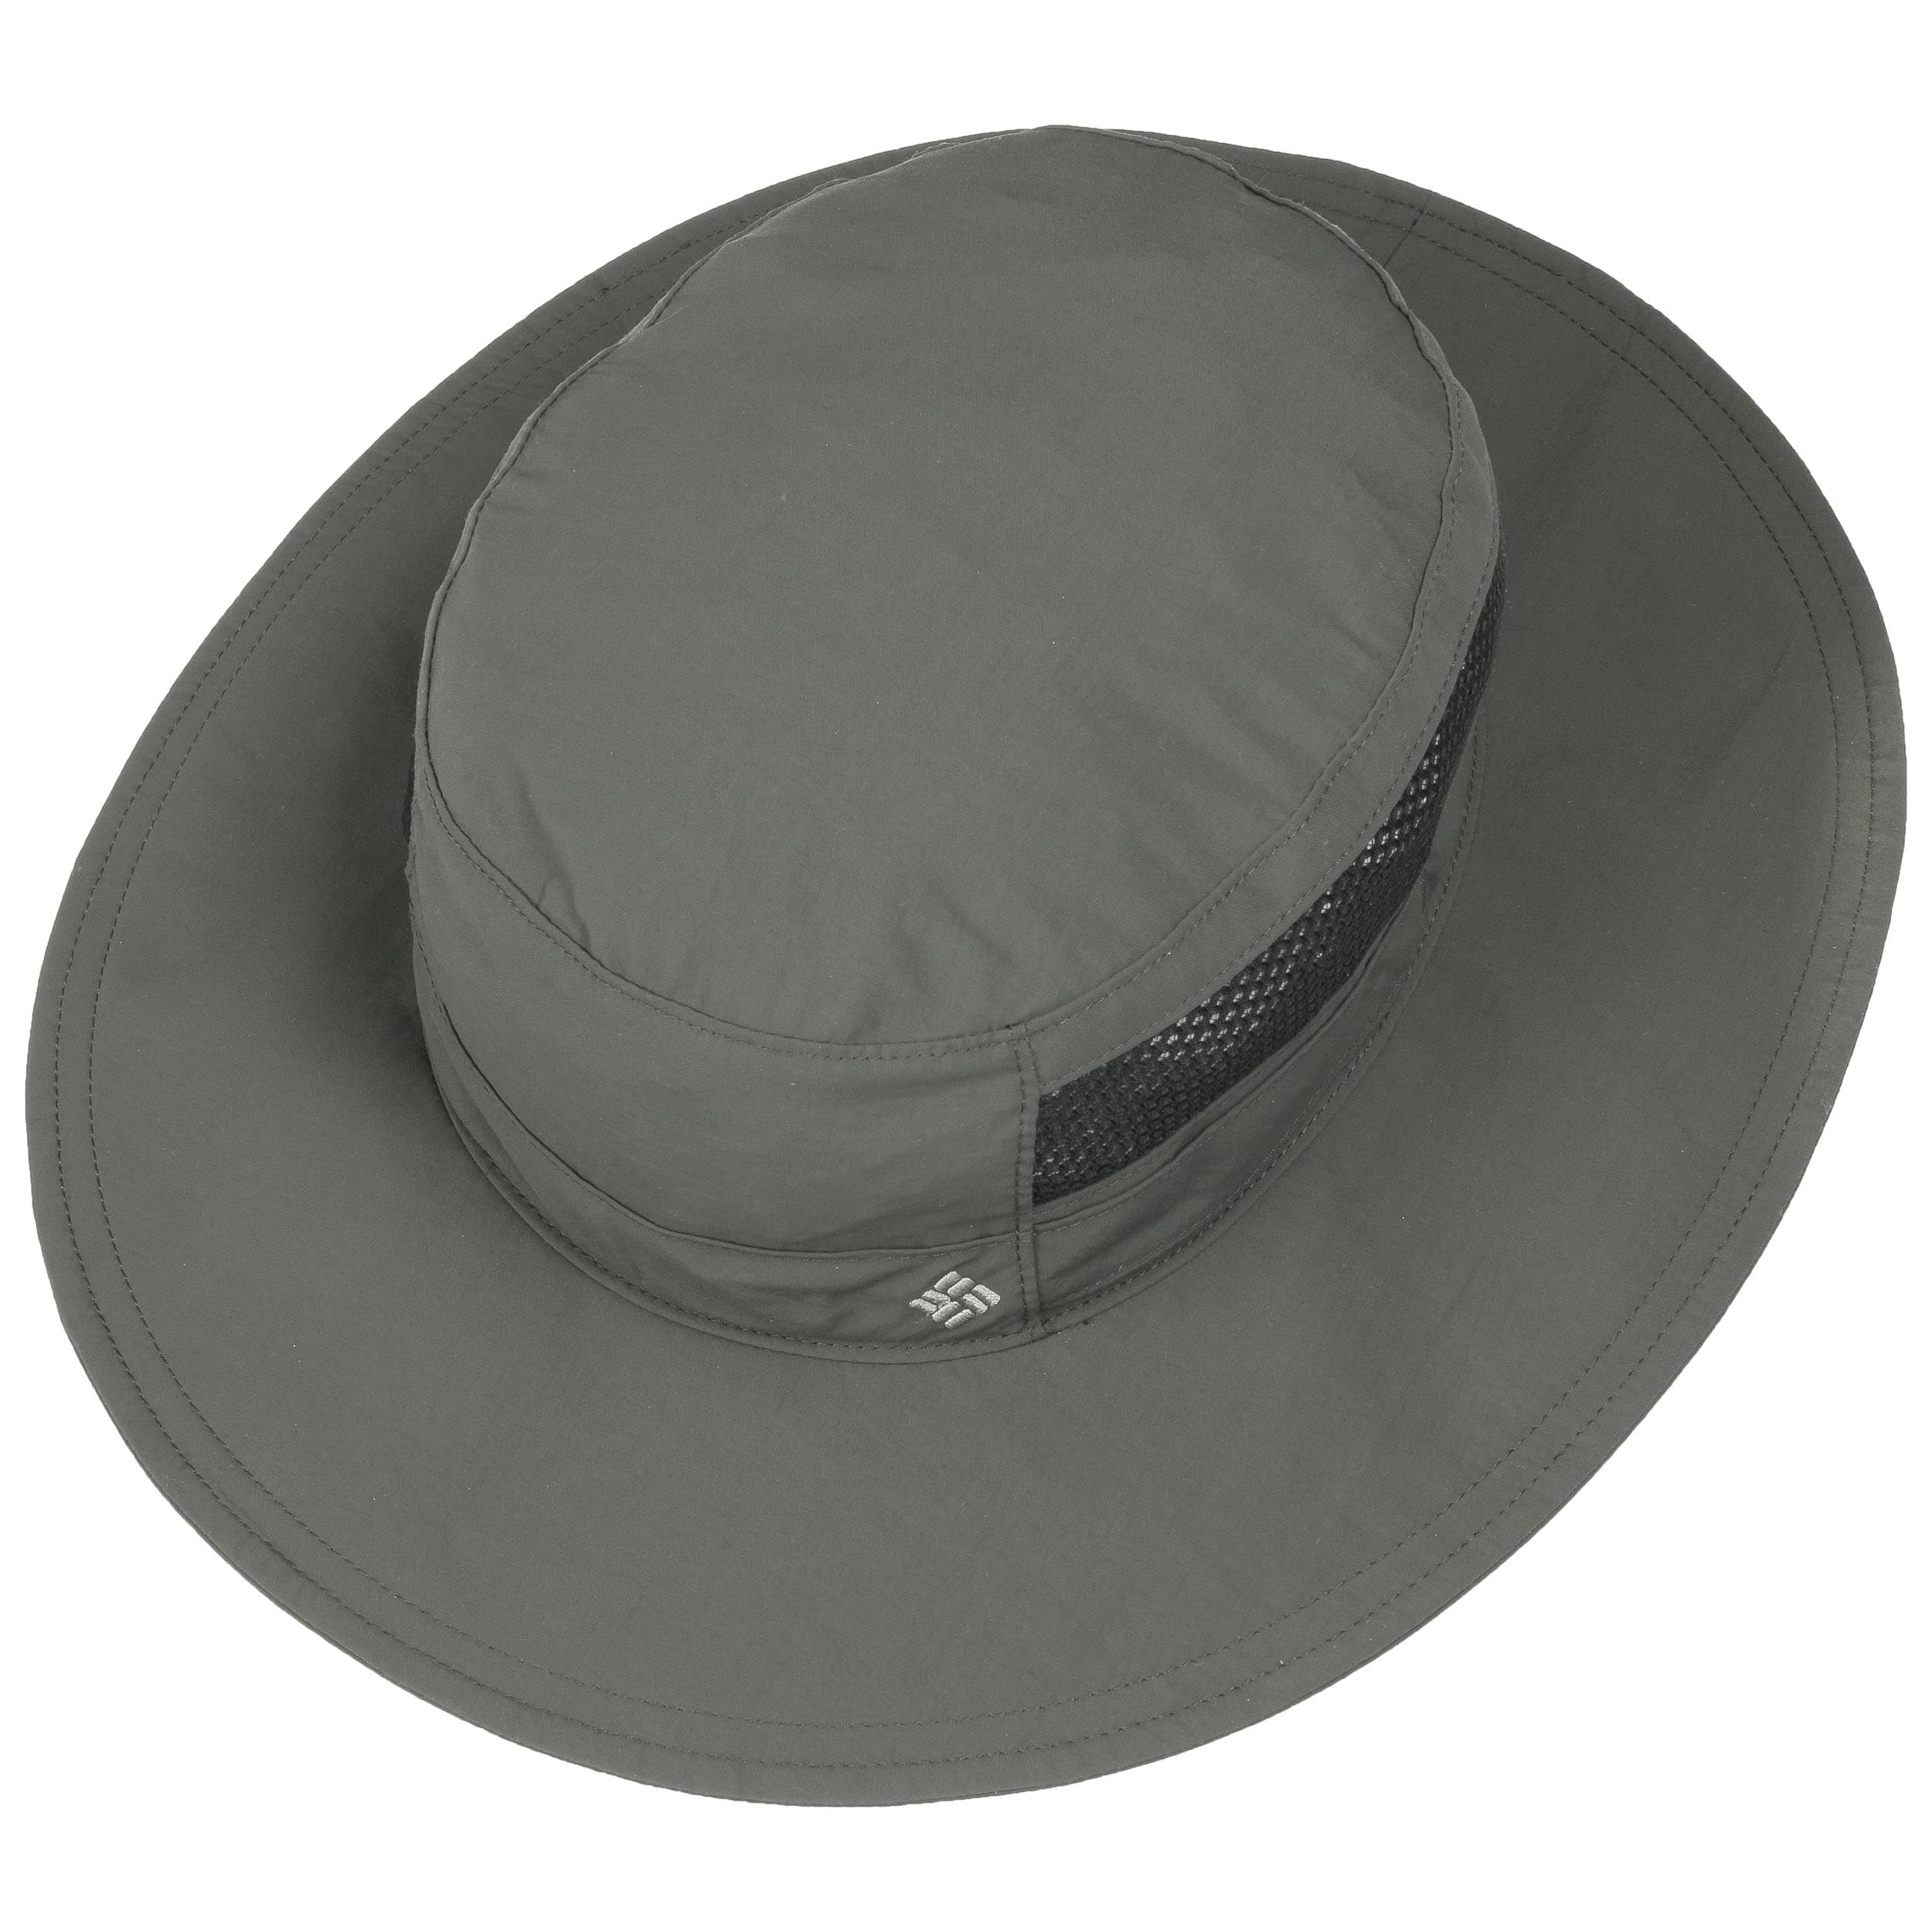 6bc31d5f6d8 ... Bora Sun Hat by Columbia - anthracite 1 ...